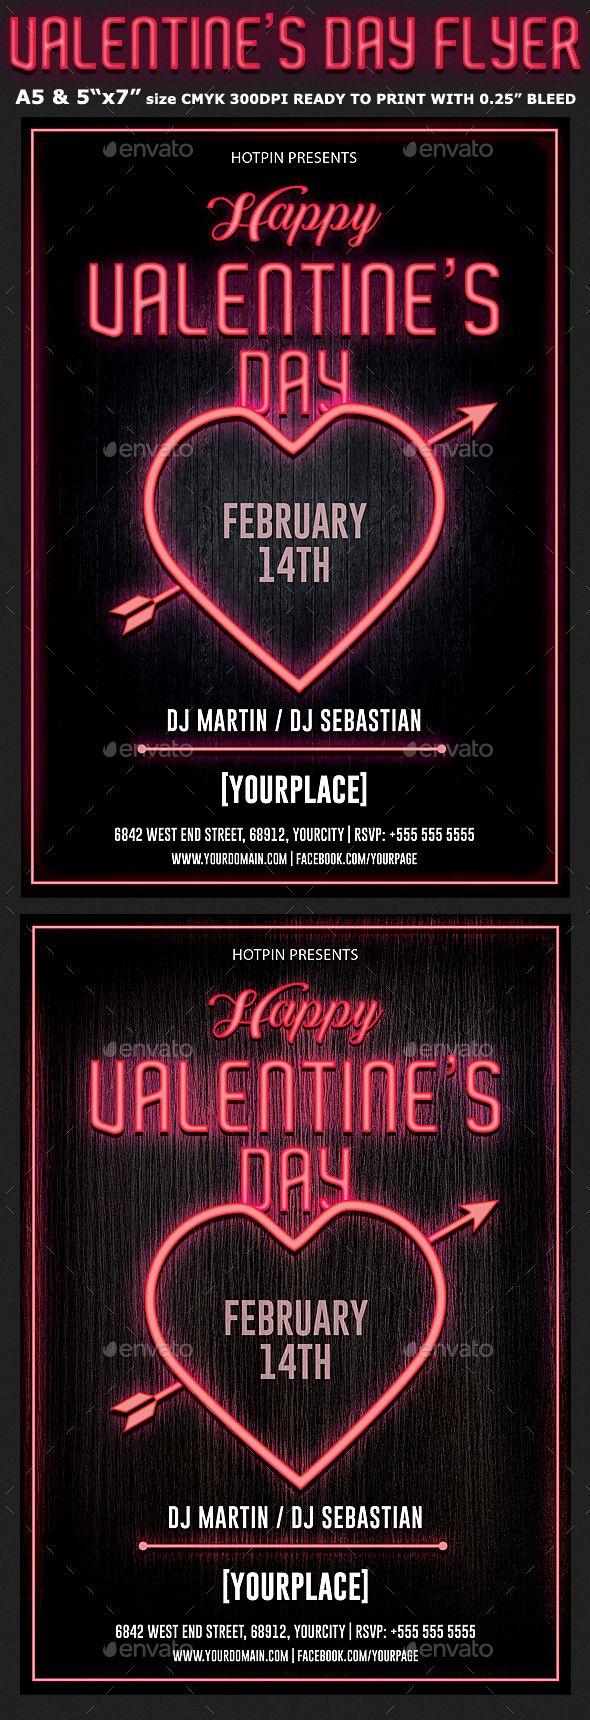 Neon Valentines Day Flyer Template Is Very Modern Flyer That Will